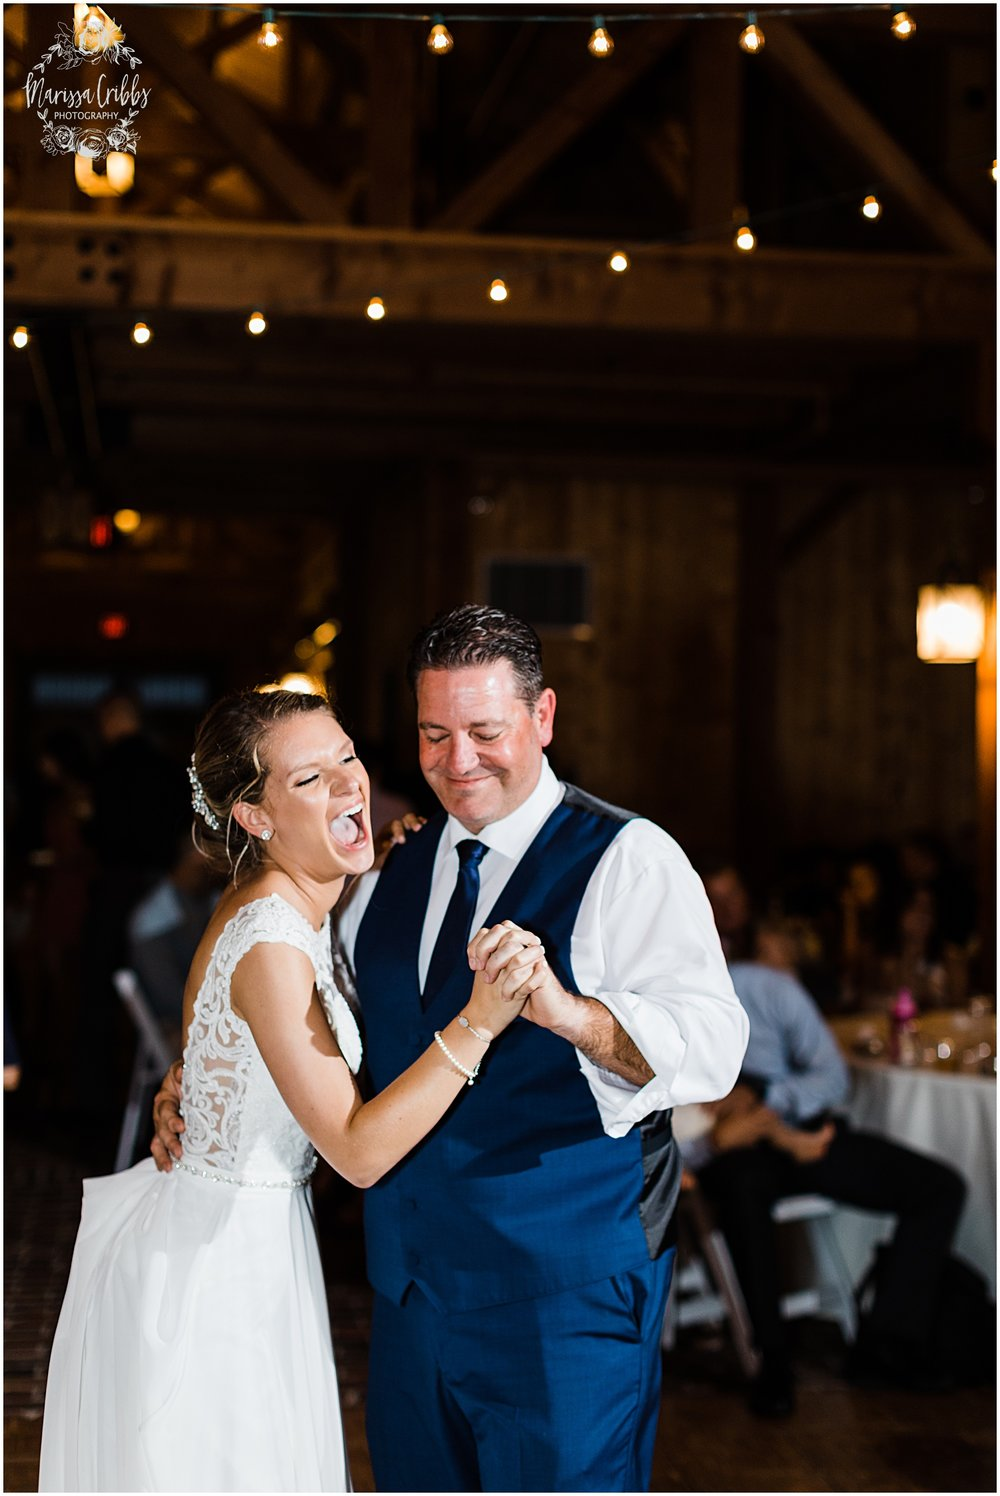 ROUNKLES WEDDING | MARISSA CRIBBS PHOTOGRAPHY | MILDALE FARM_6193.jpg